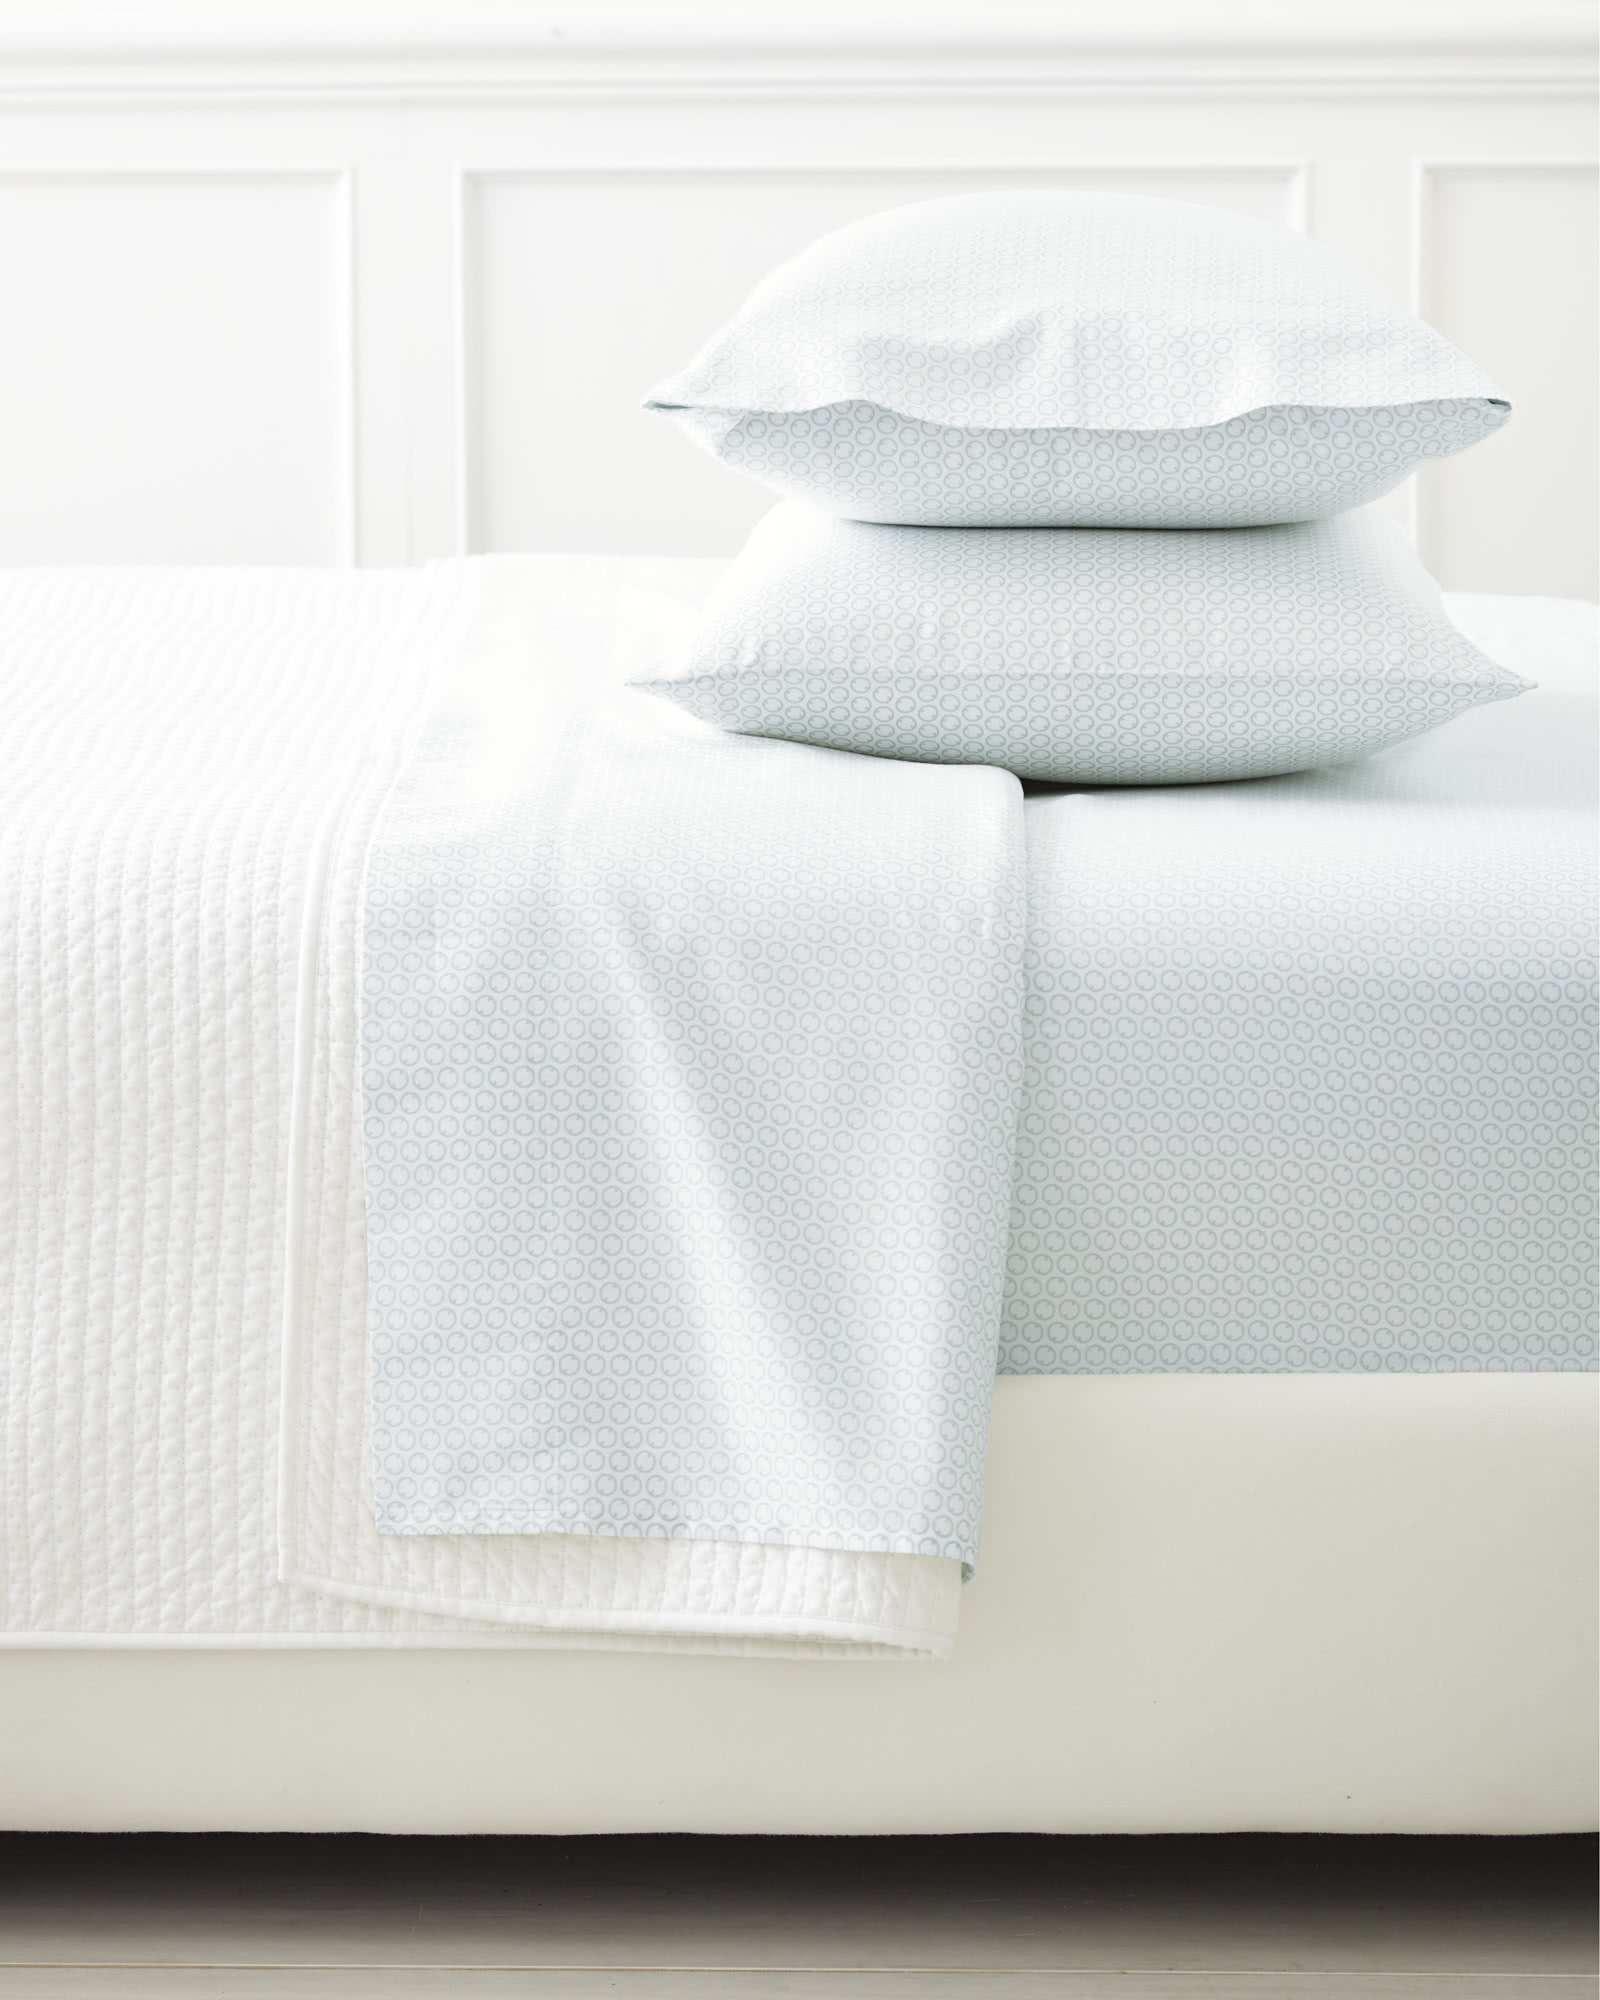 Extra French Ring Pillowcases (Set of 2)